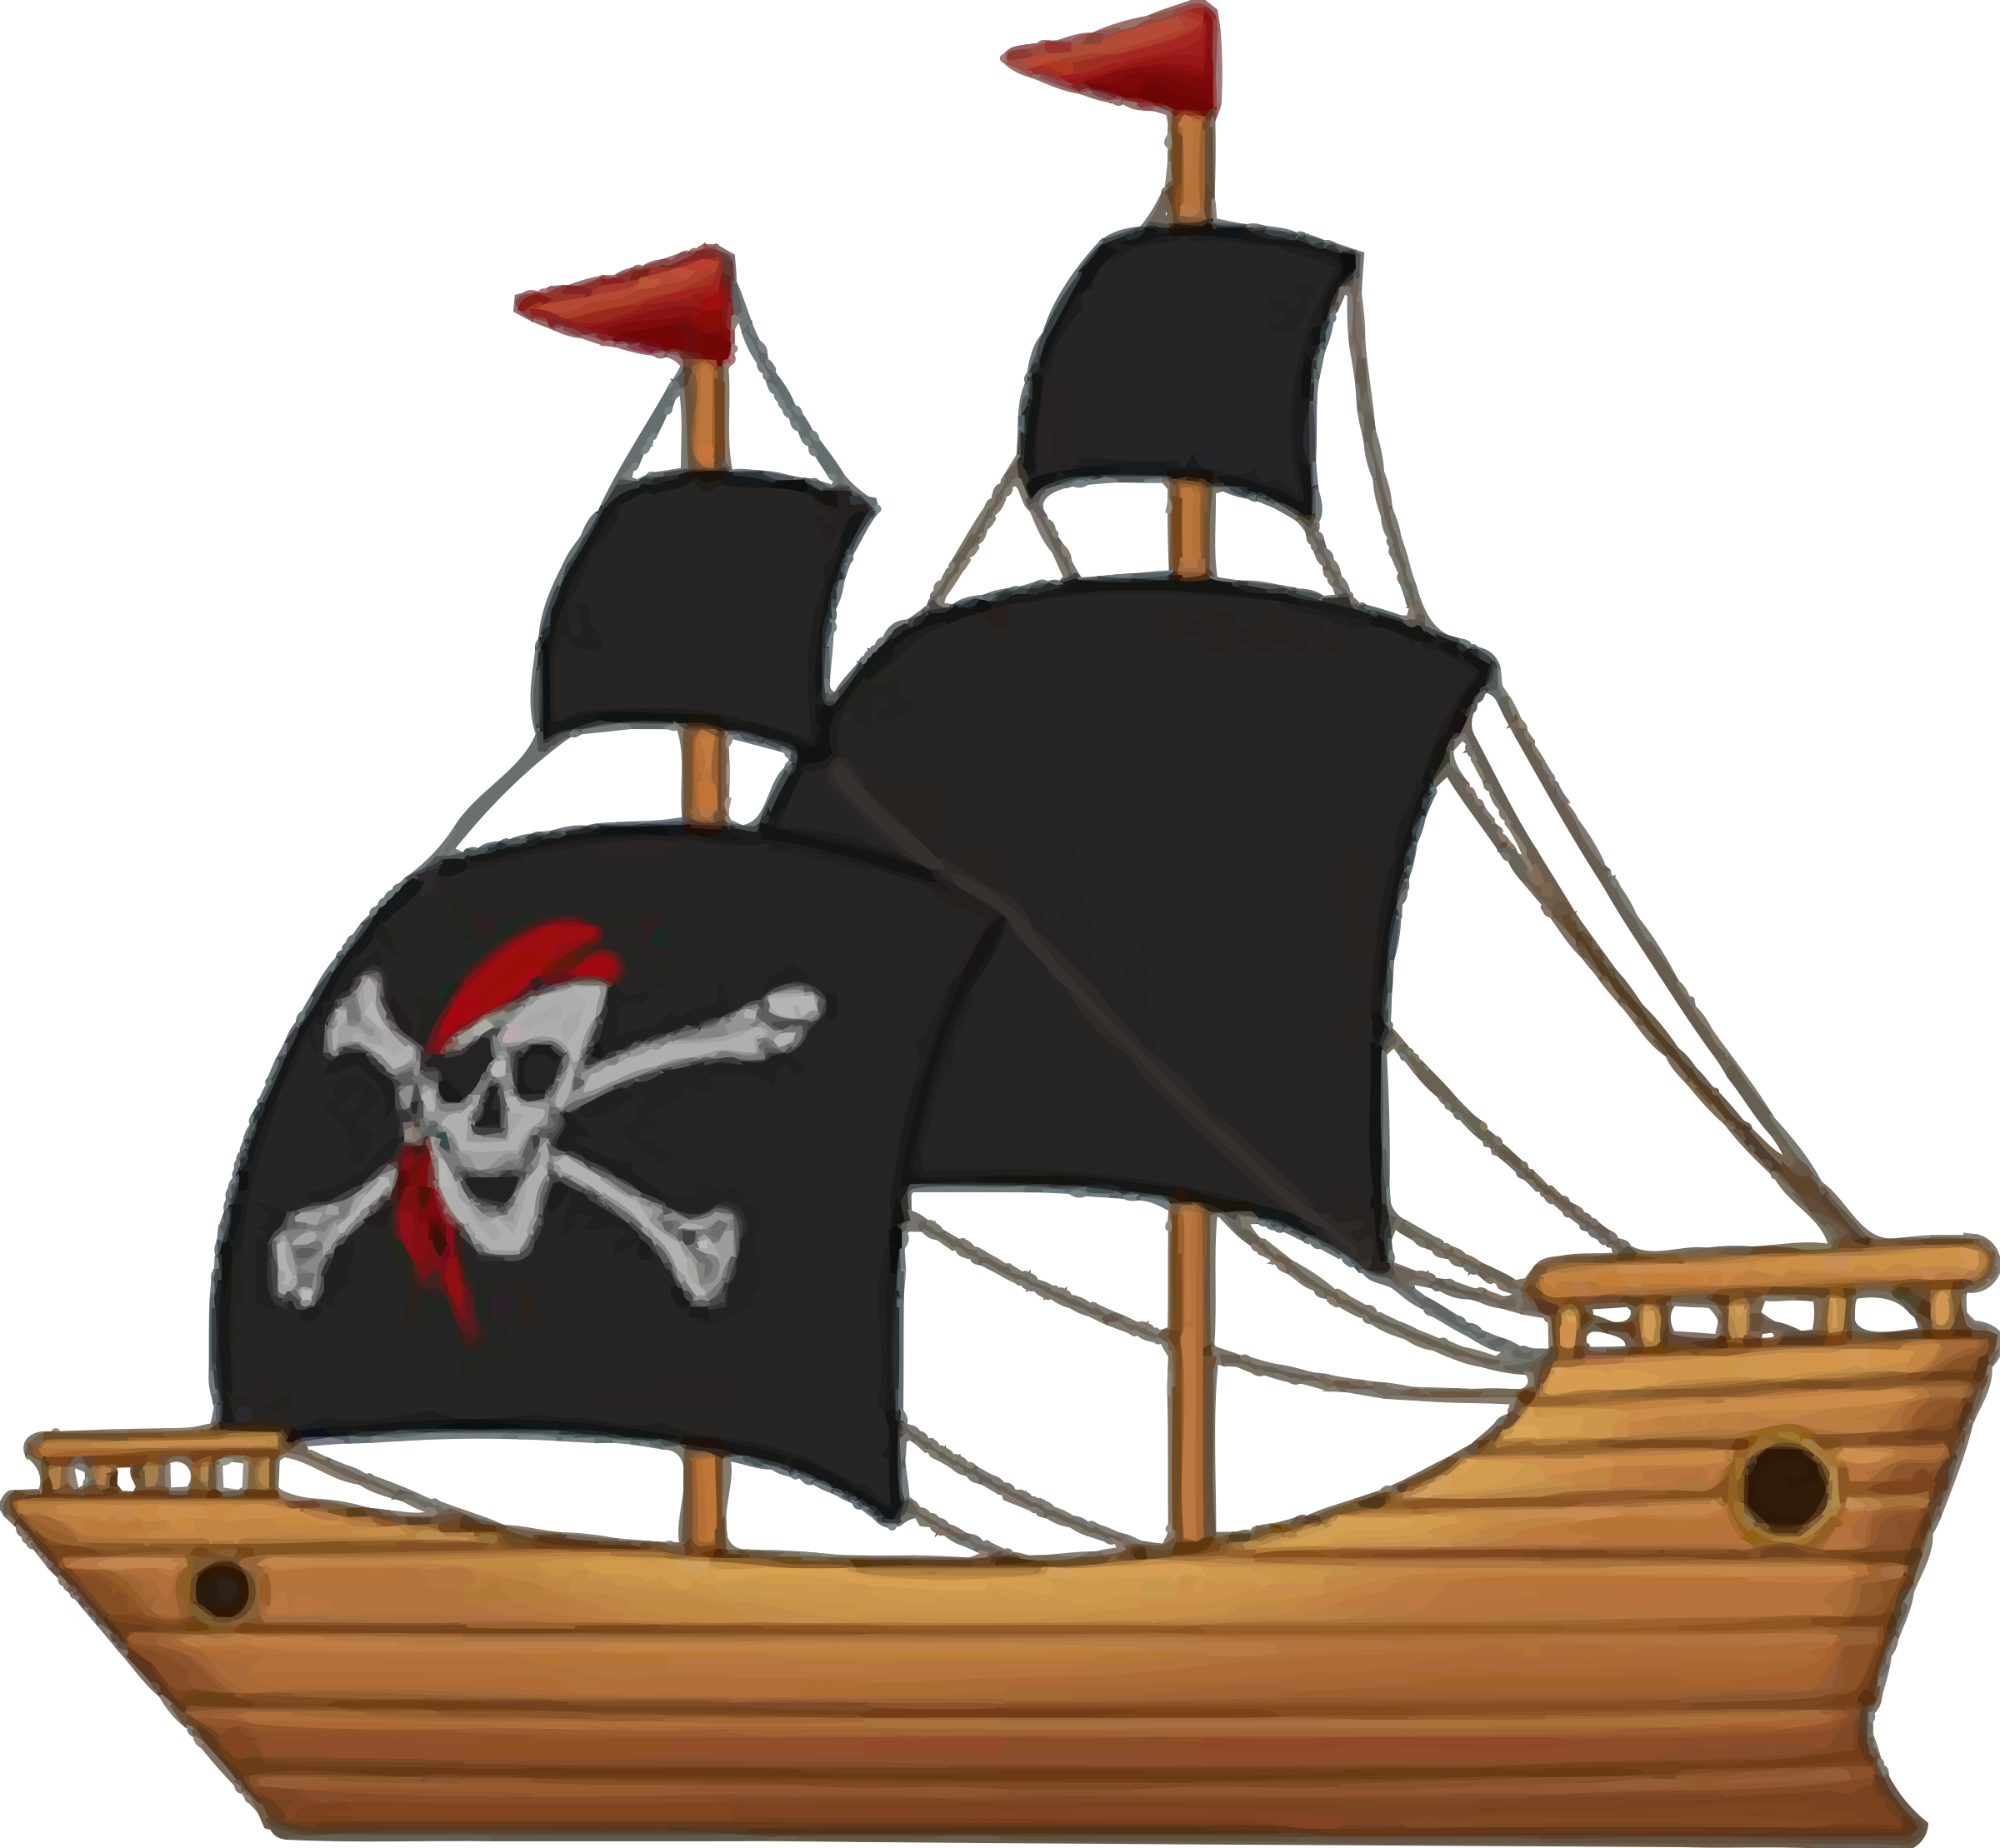 Sailing Ship clipart pirate ship Pirate clipart collection of ship